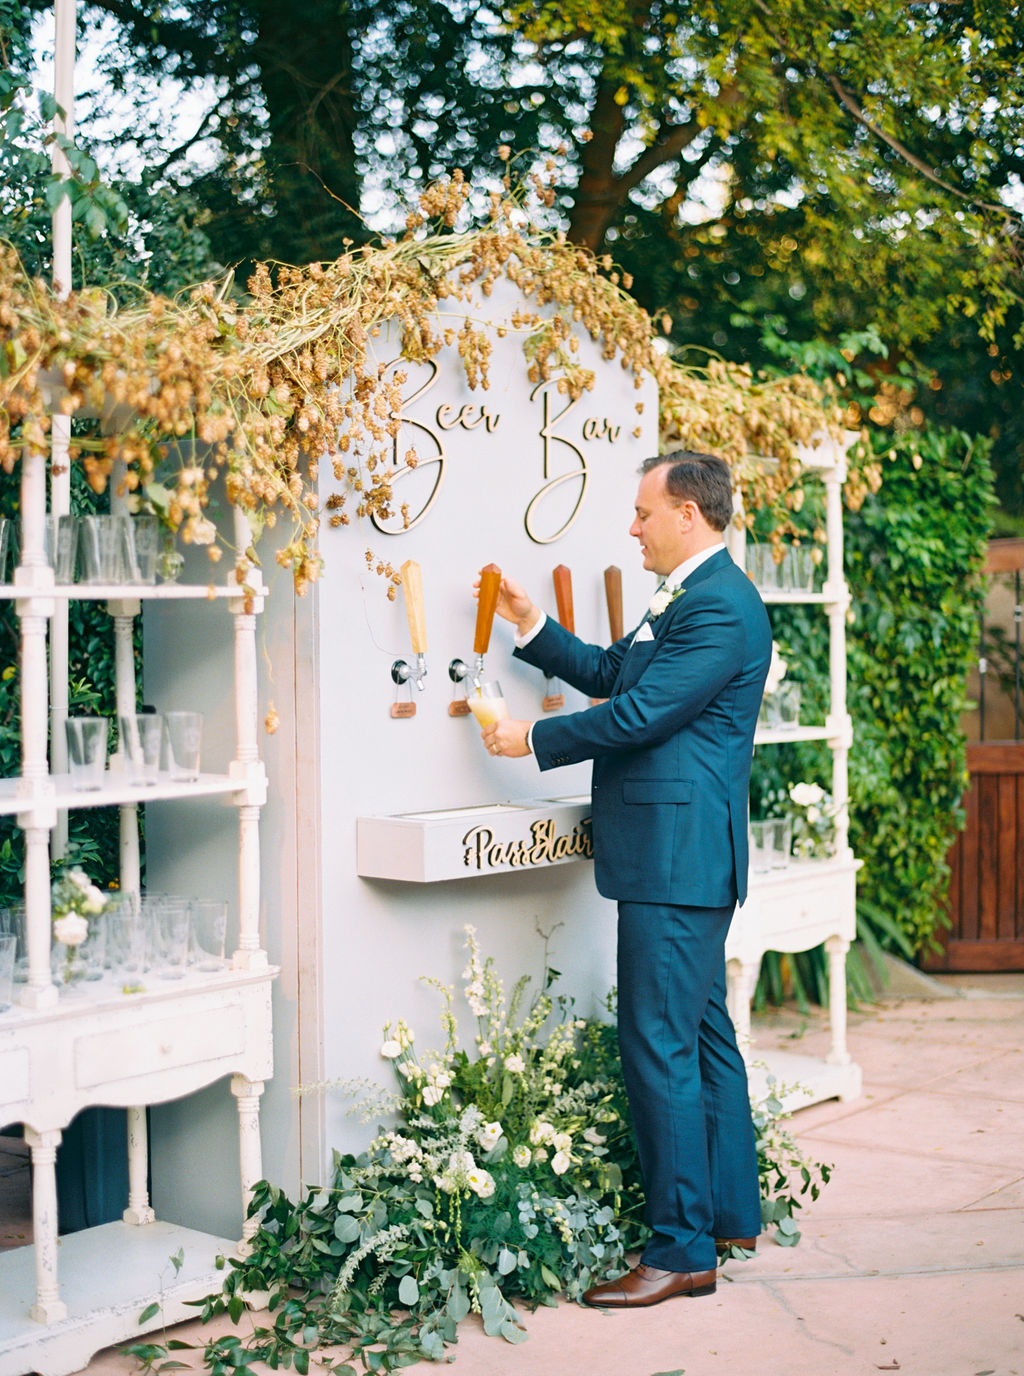 wedding beer bar.JPG